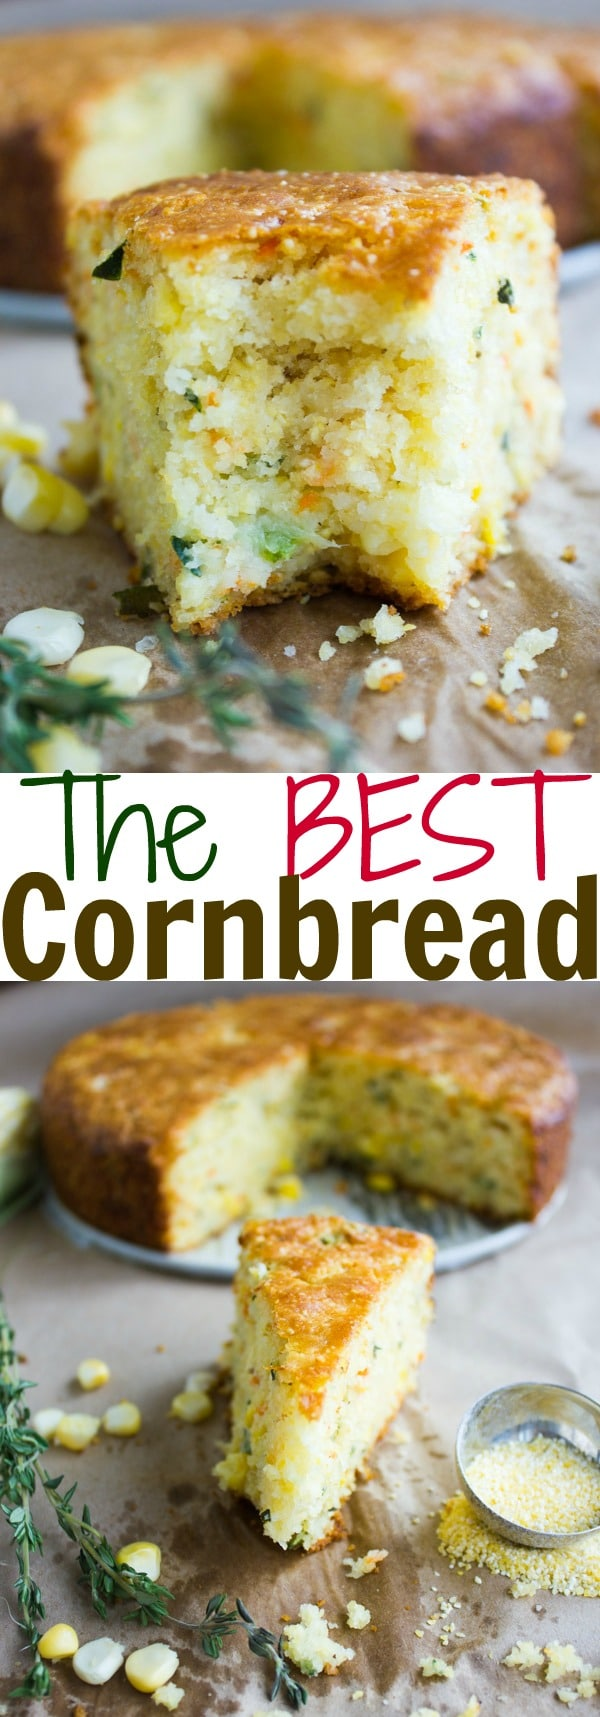 THE BEST CORNBREAD aka Cheddar Zucchini Cornbread | Take a break from regular cornbread and try this fluffy Cheddar and Zucchini Cornbread recipe. The batter can be whipped up within minutes and once baked, this fluffy, cheesy cornbread is the perfect accompaniment to any bbq, soup or stew!Also wonderful alongside a Thanksgiving Turkey #cornbread, #easy, #zucchini, #side, #bread, #Thanksgiving